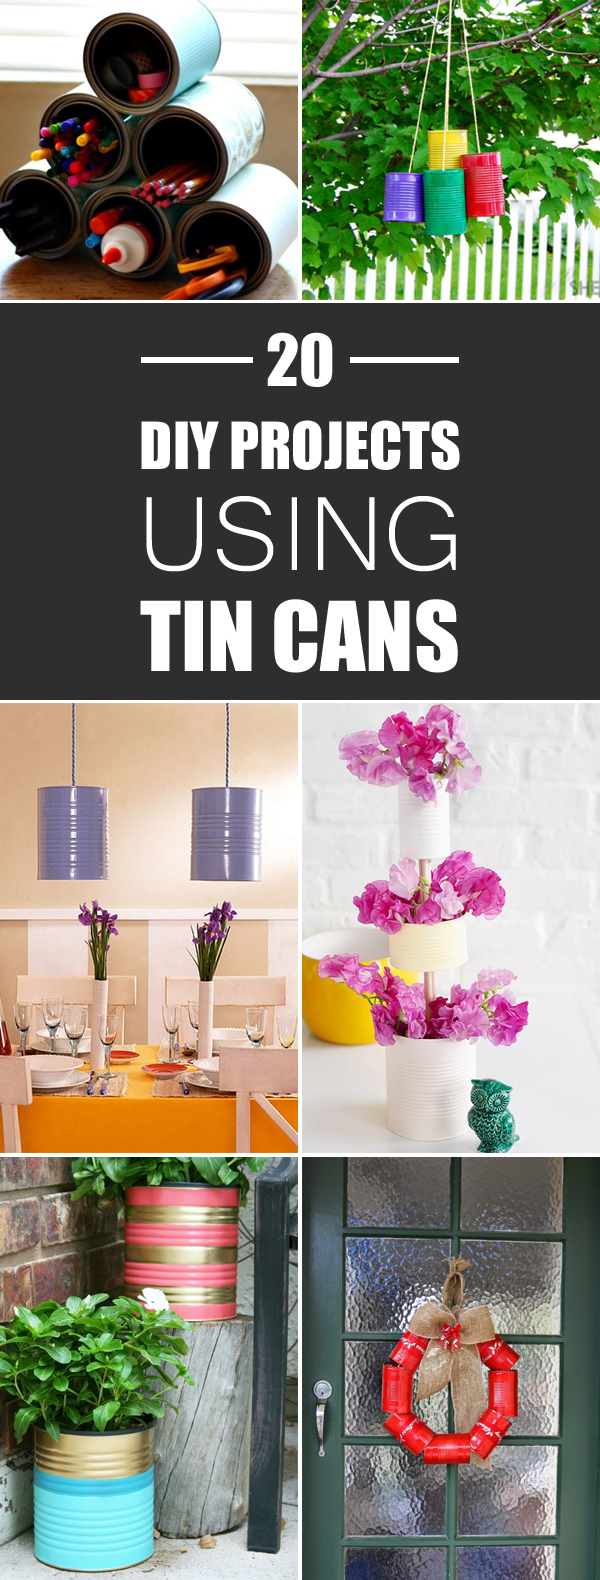 Save your tin cans for one of these amazing DIY projects.